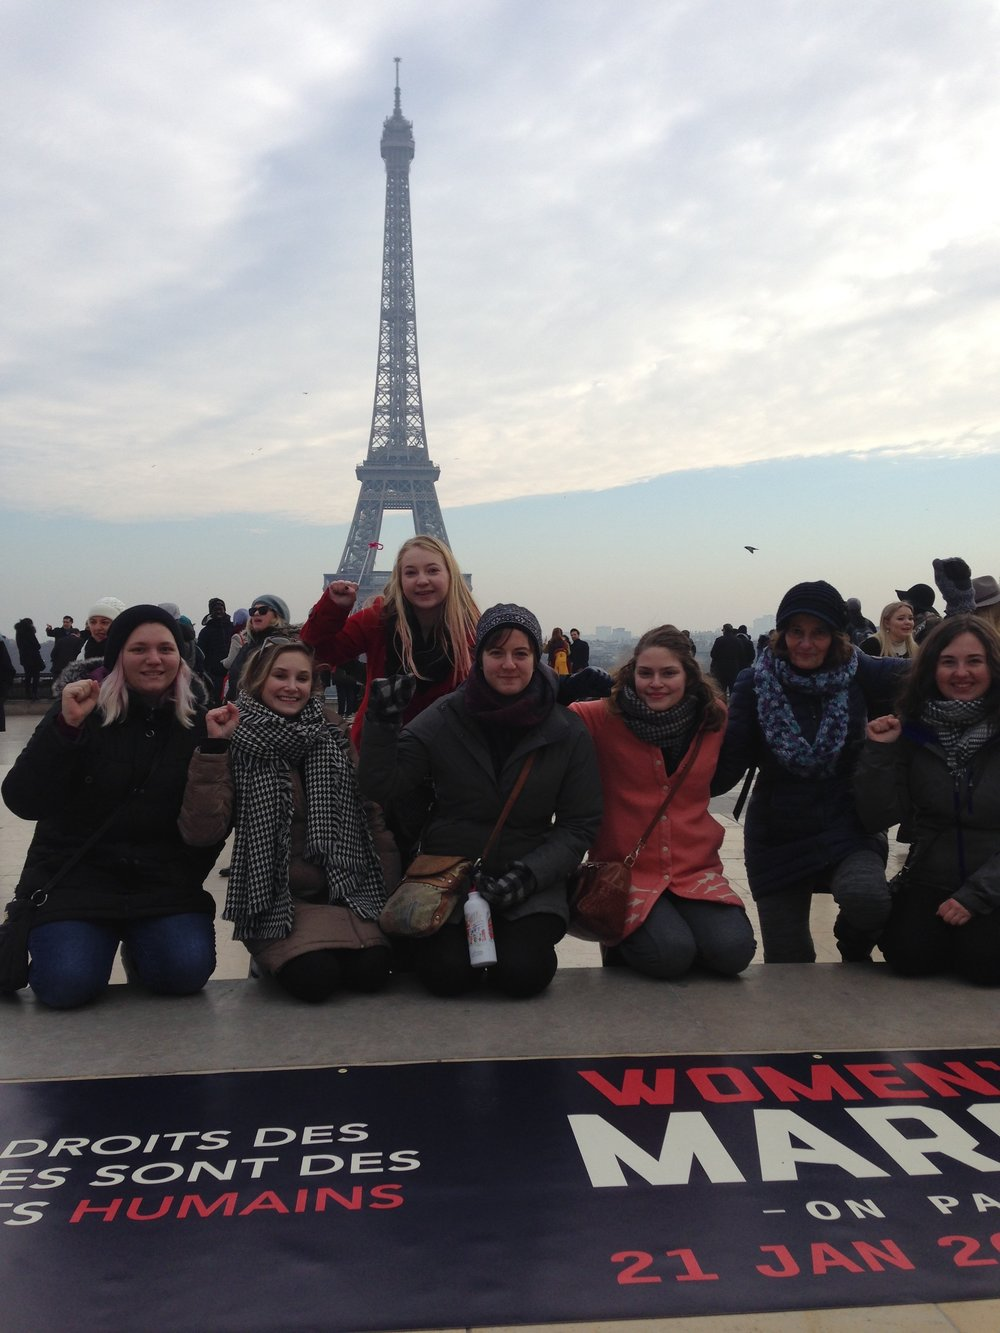 Katies, studying over in France over J-Term, marching in Paris